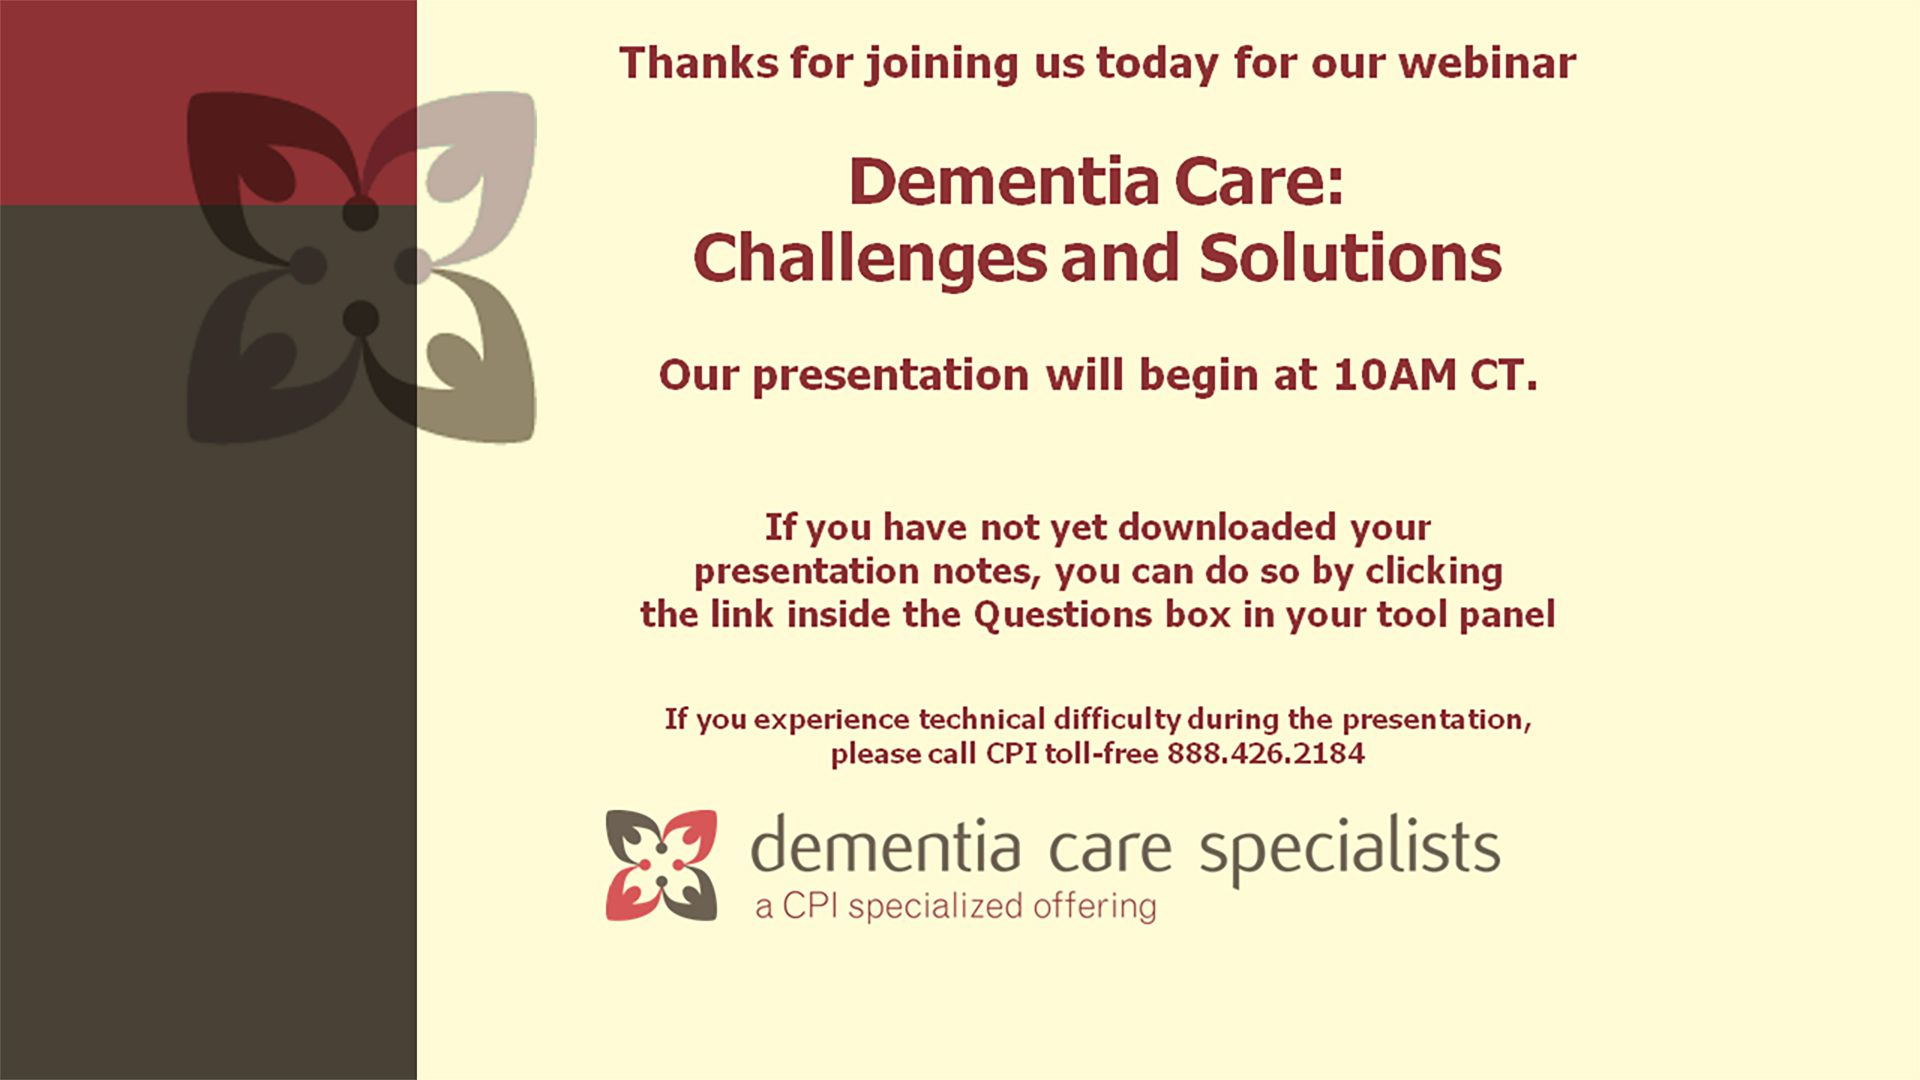 Dementia Care: Challenges and Solutions